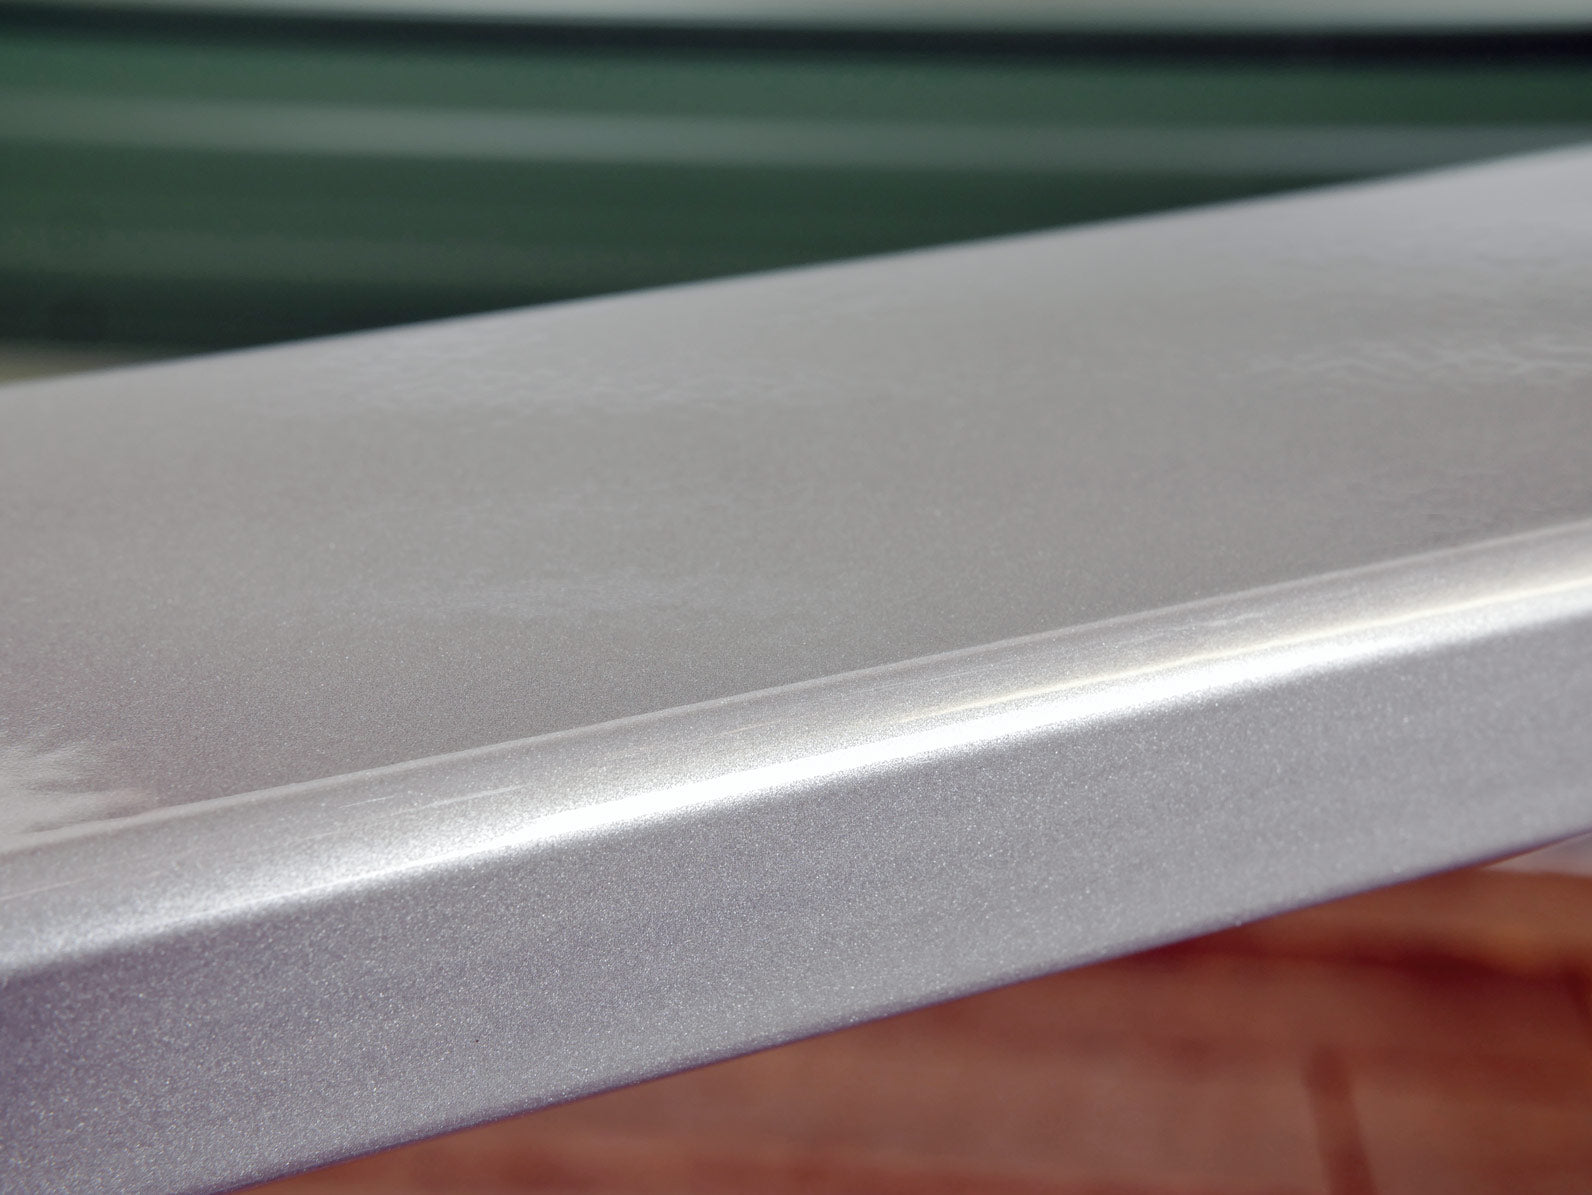 'Silver Metallic' finish on 1x3 tube steel material